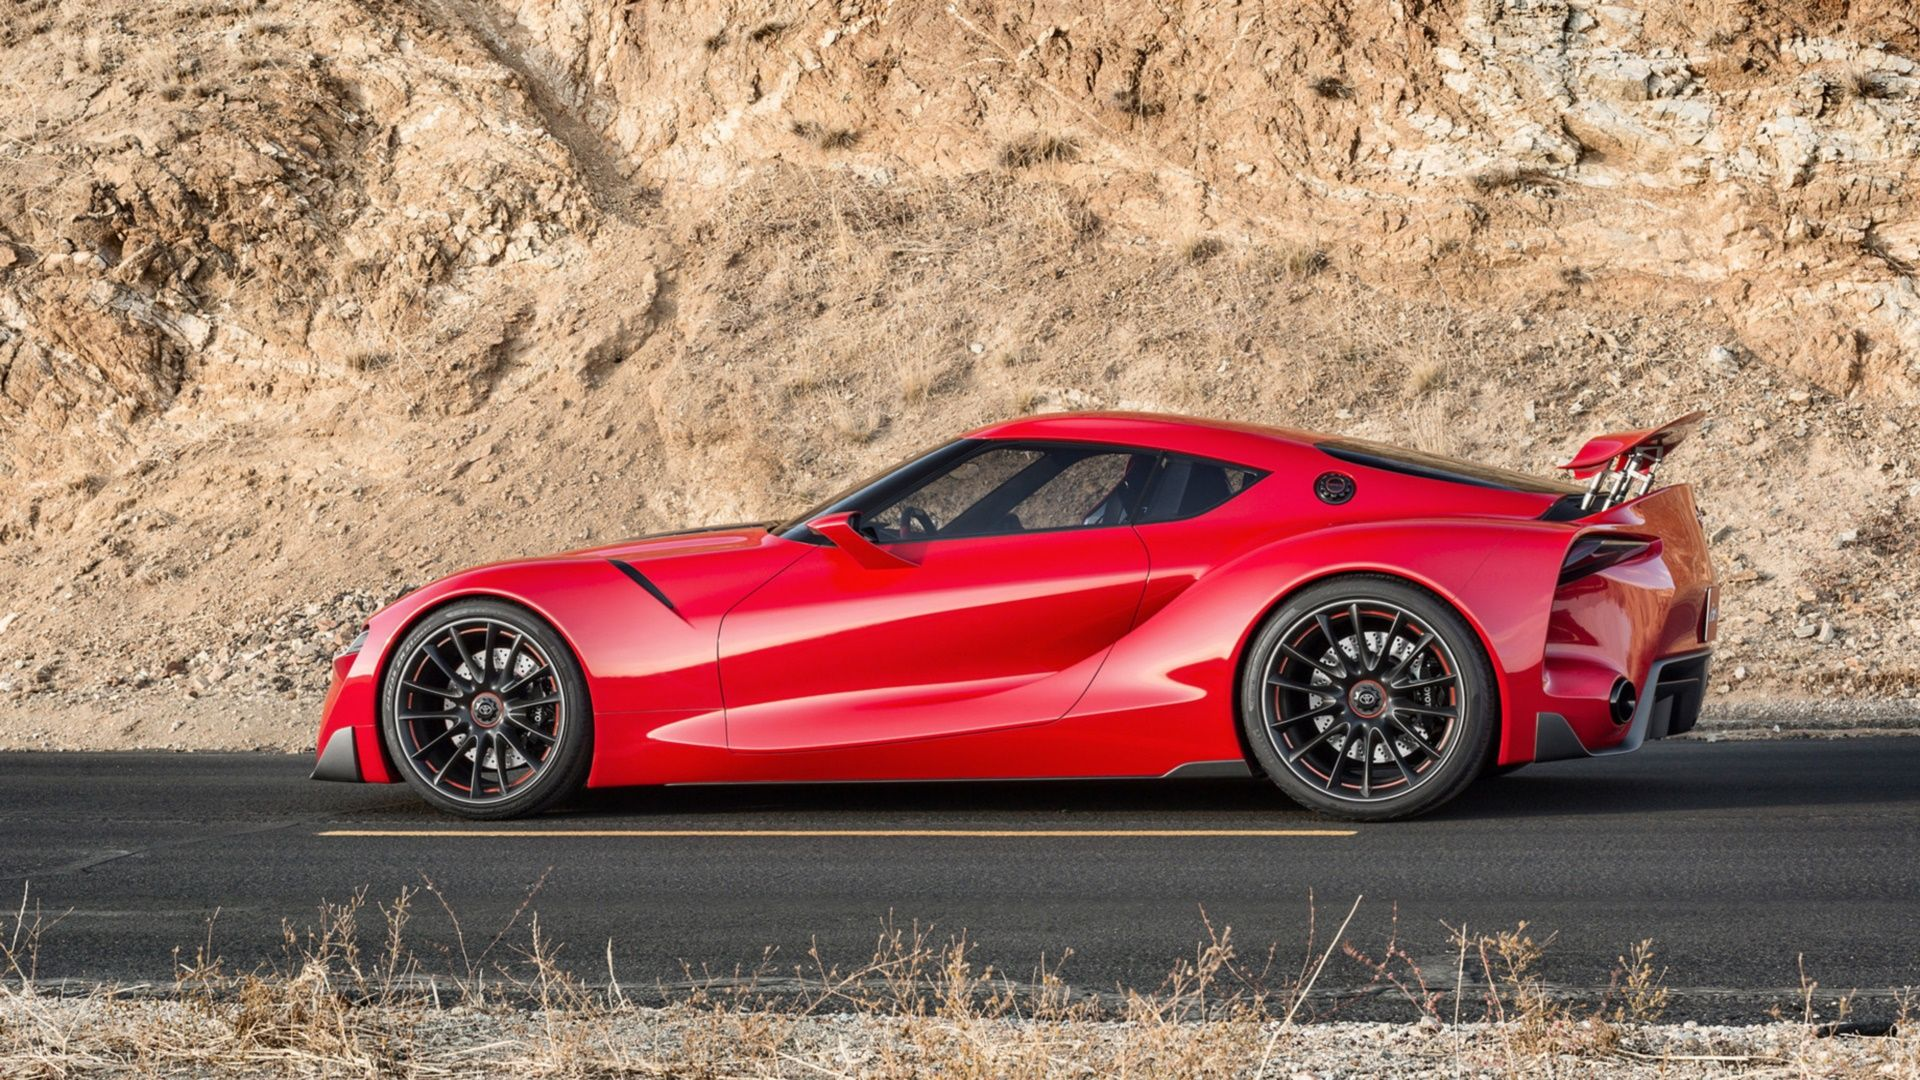 Vehicles - 2014 Toyota Ft-1 Concept Wallpaper   New toyota ...  Toyota Sport Cars 2014